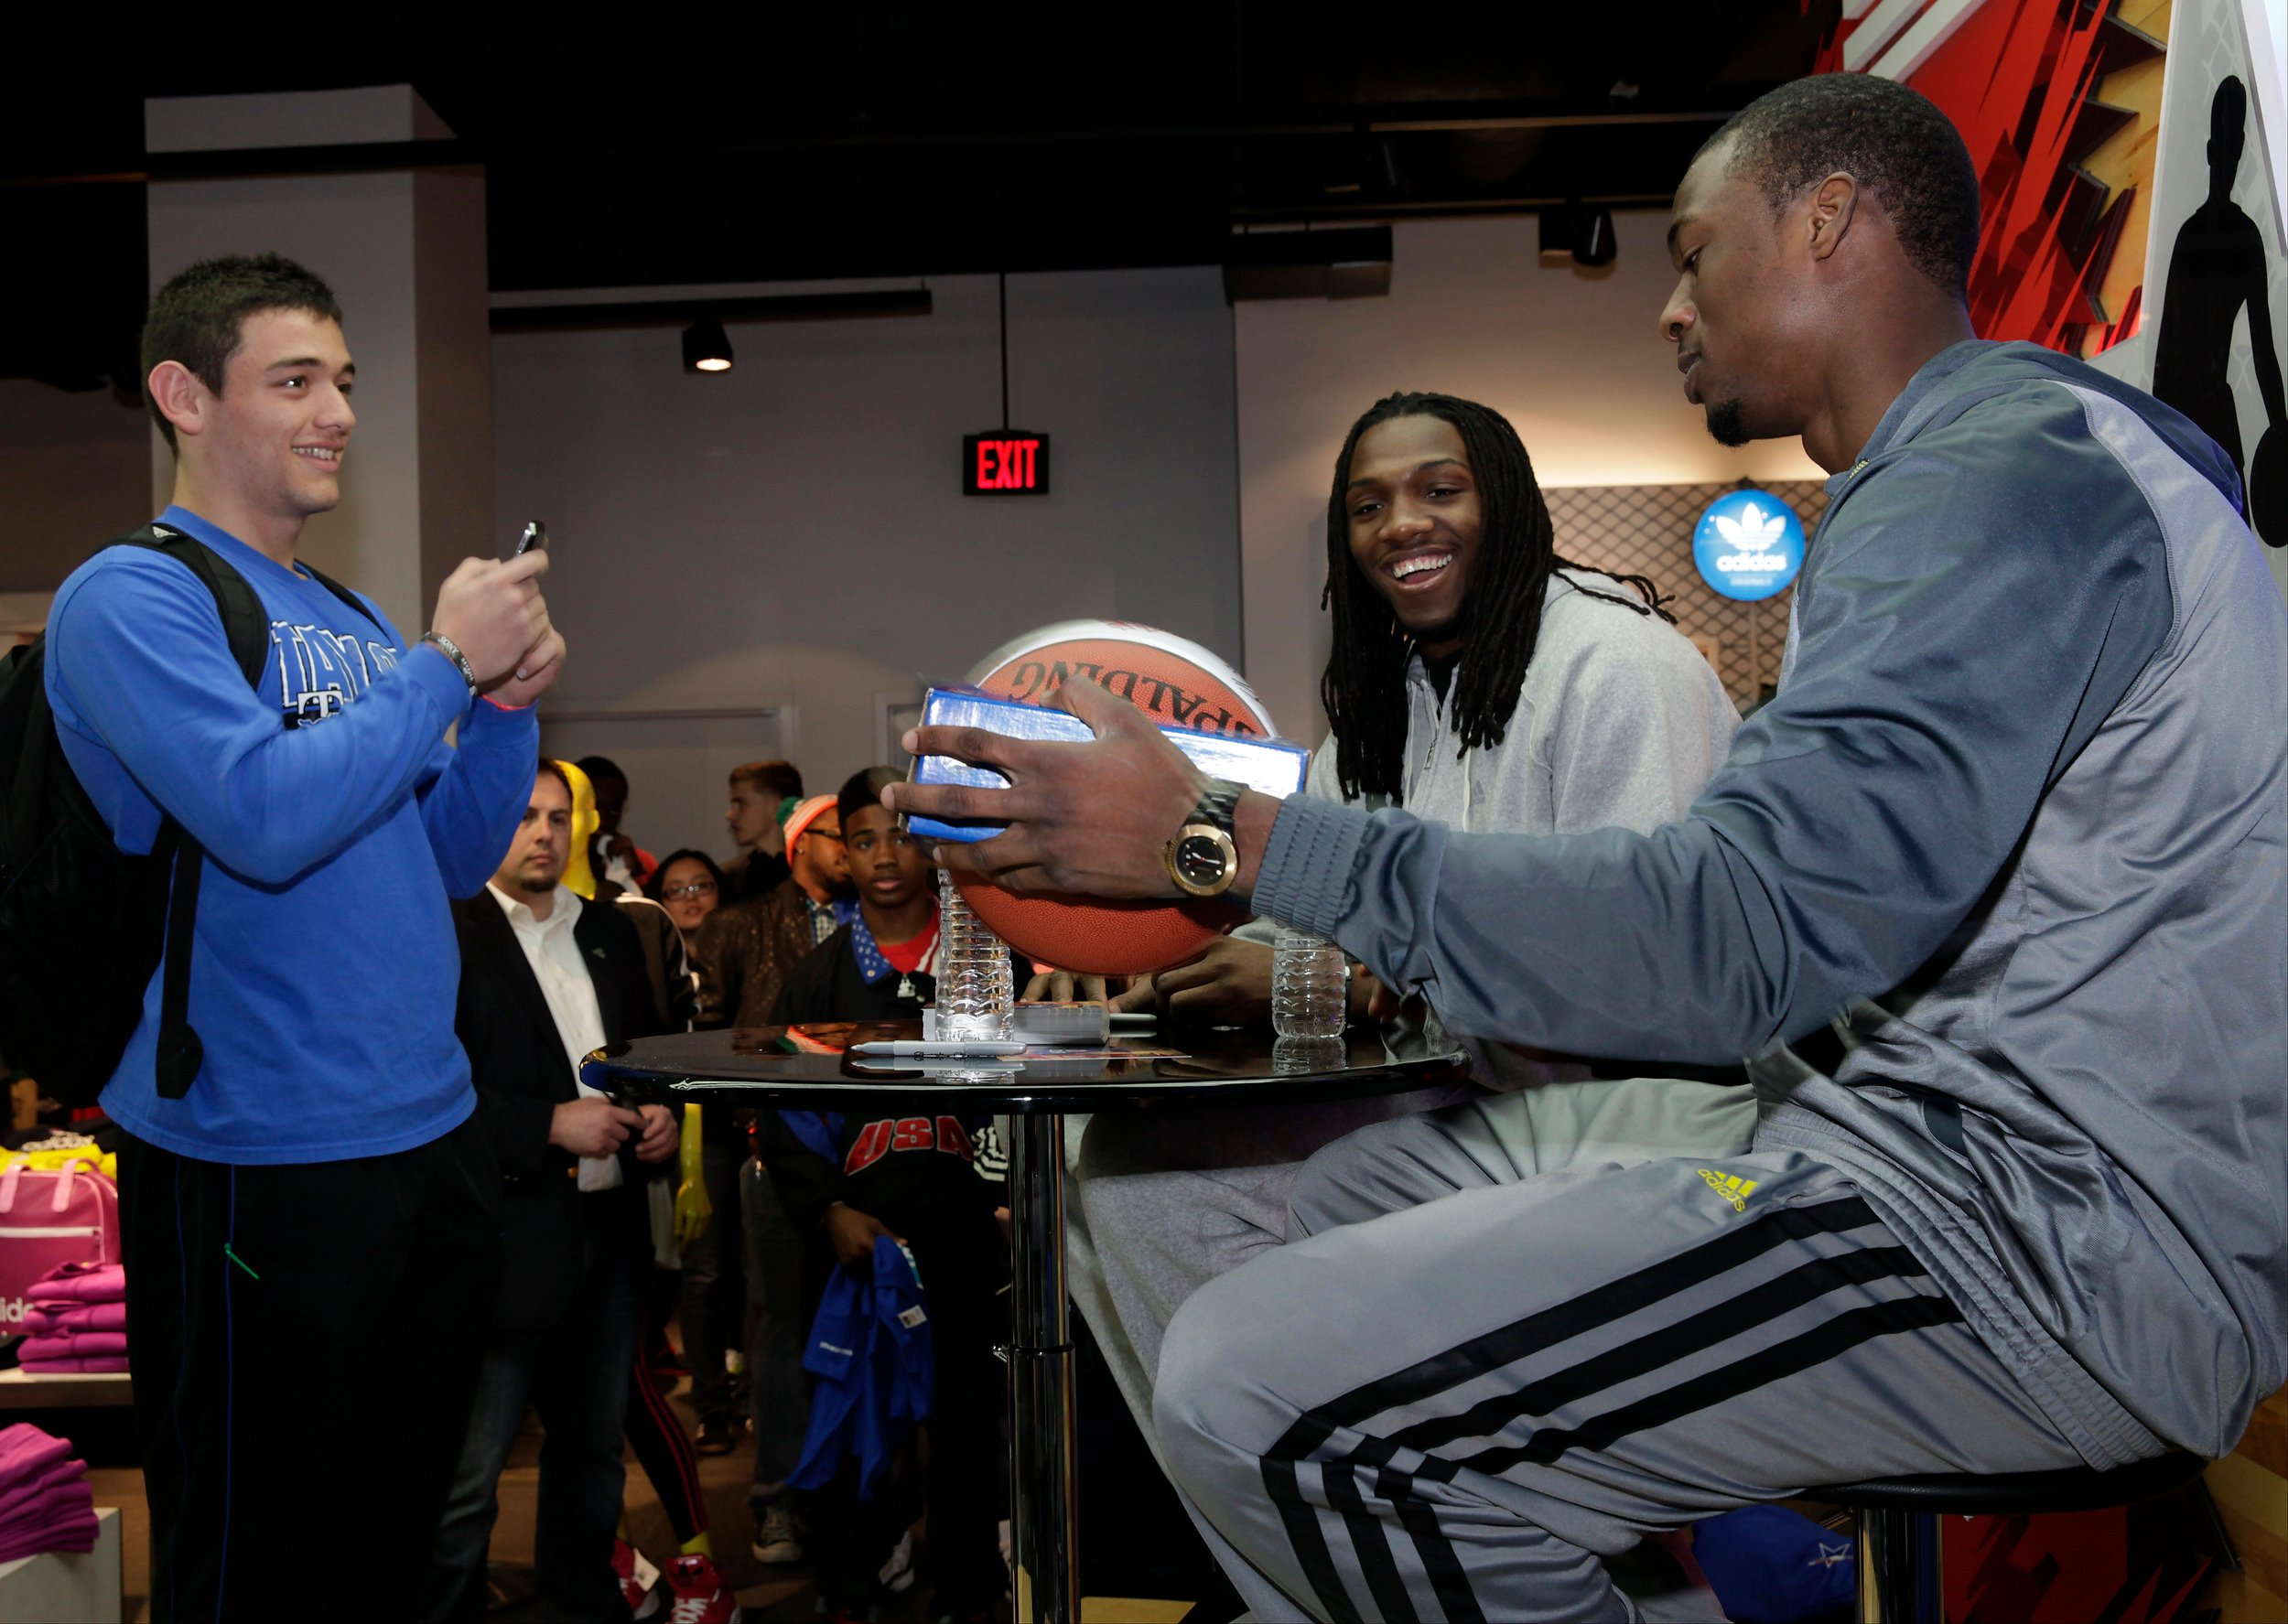 dwight-howard-jrue-holiday-ricky-rubio-and-others-celebrate-nba-all-star-weekend-5